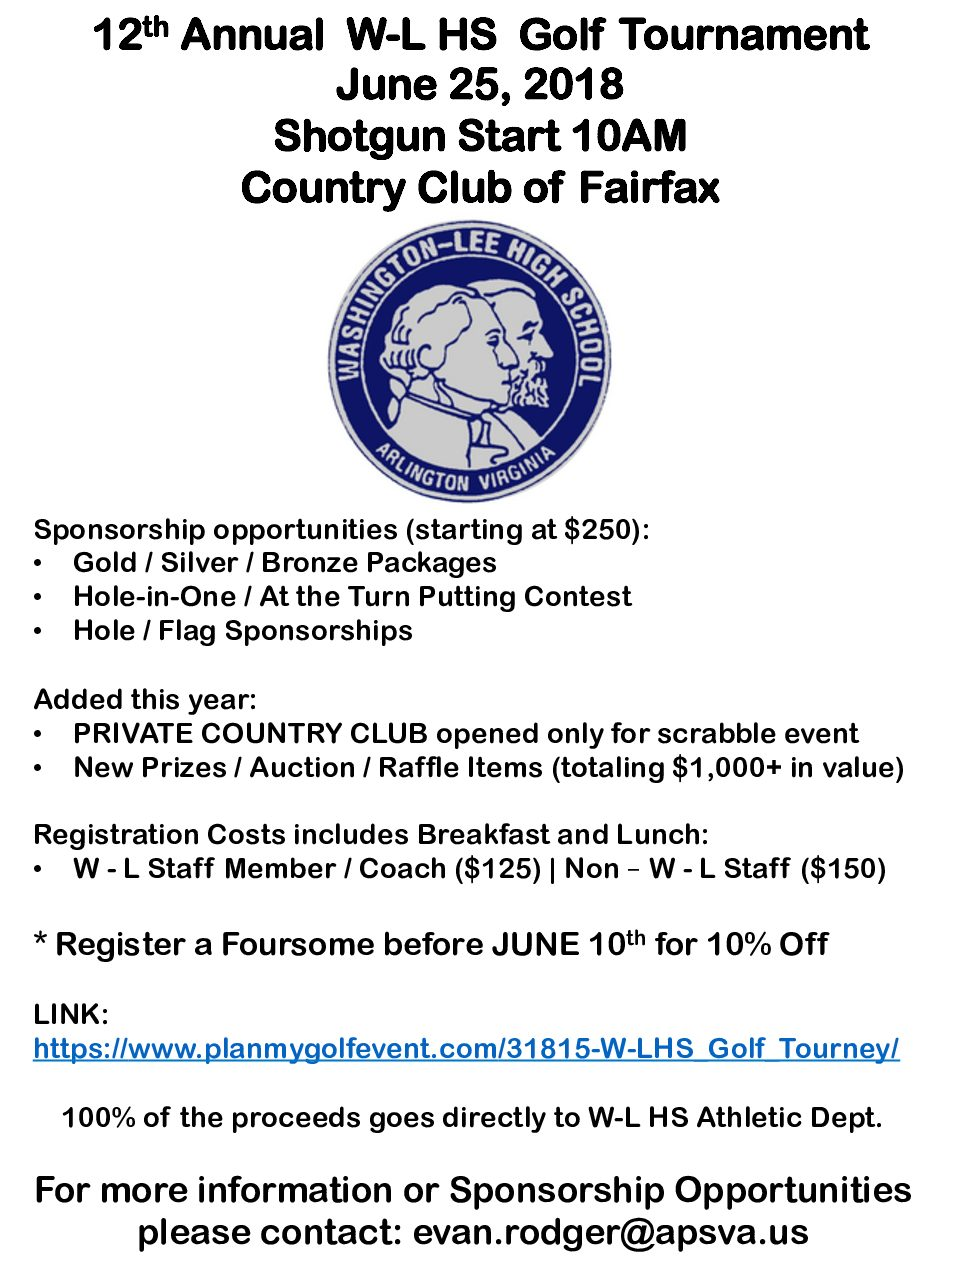 REGISTER NOW: 12th Annual W-L Golf Tournament Held at Country Club of Fairfax on June 25th